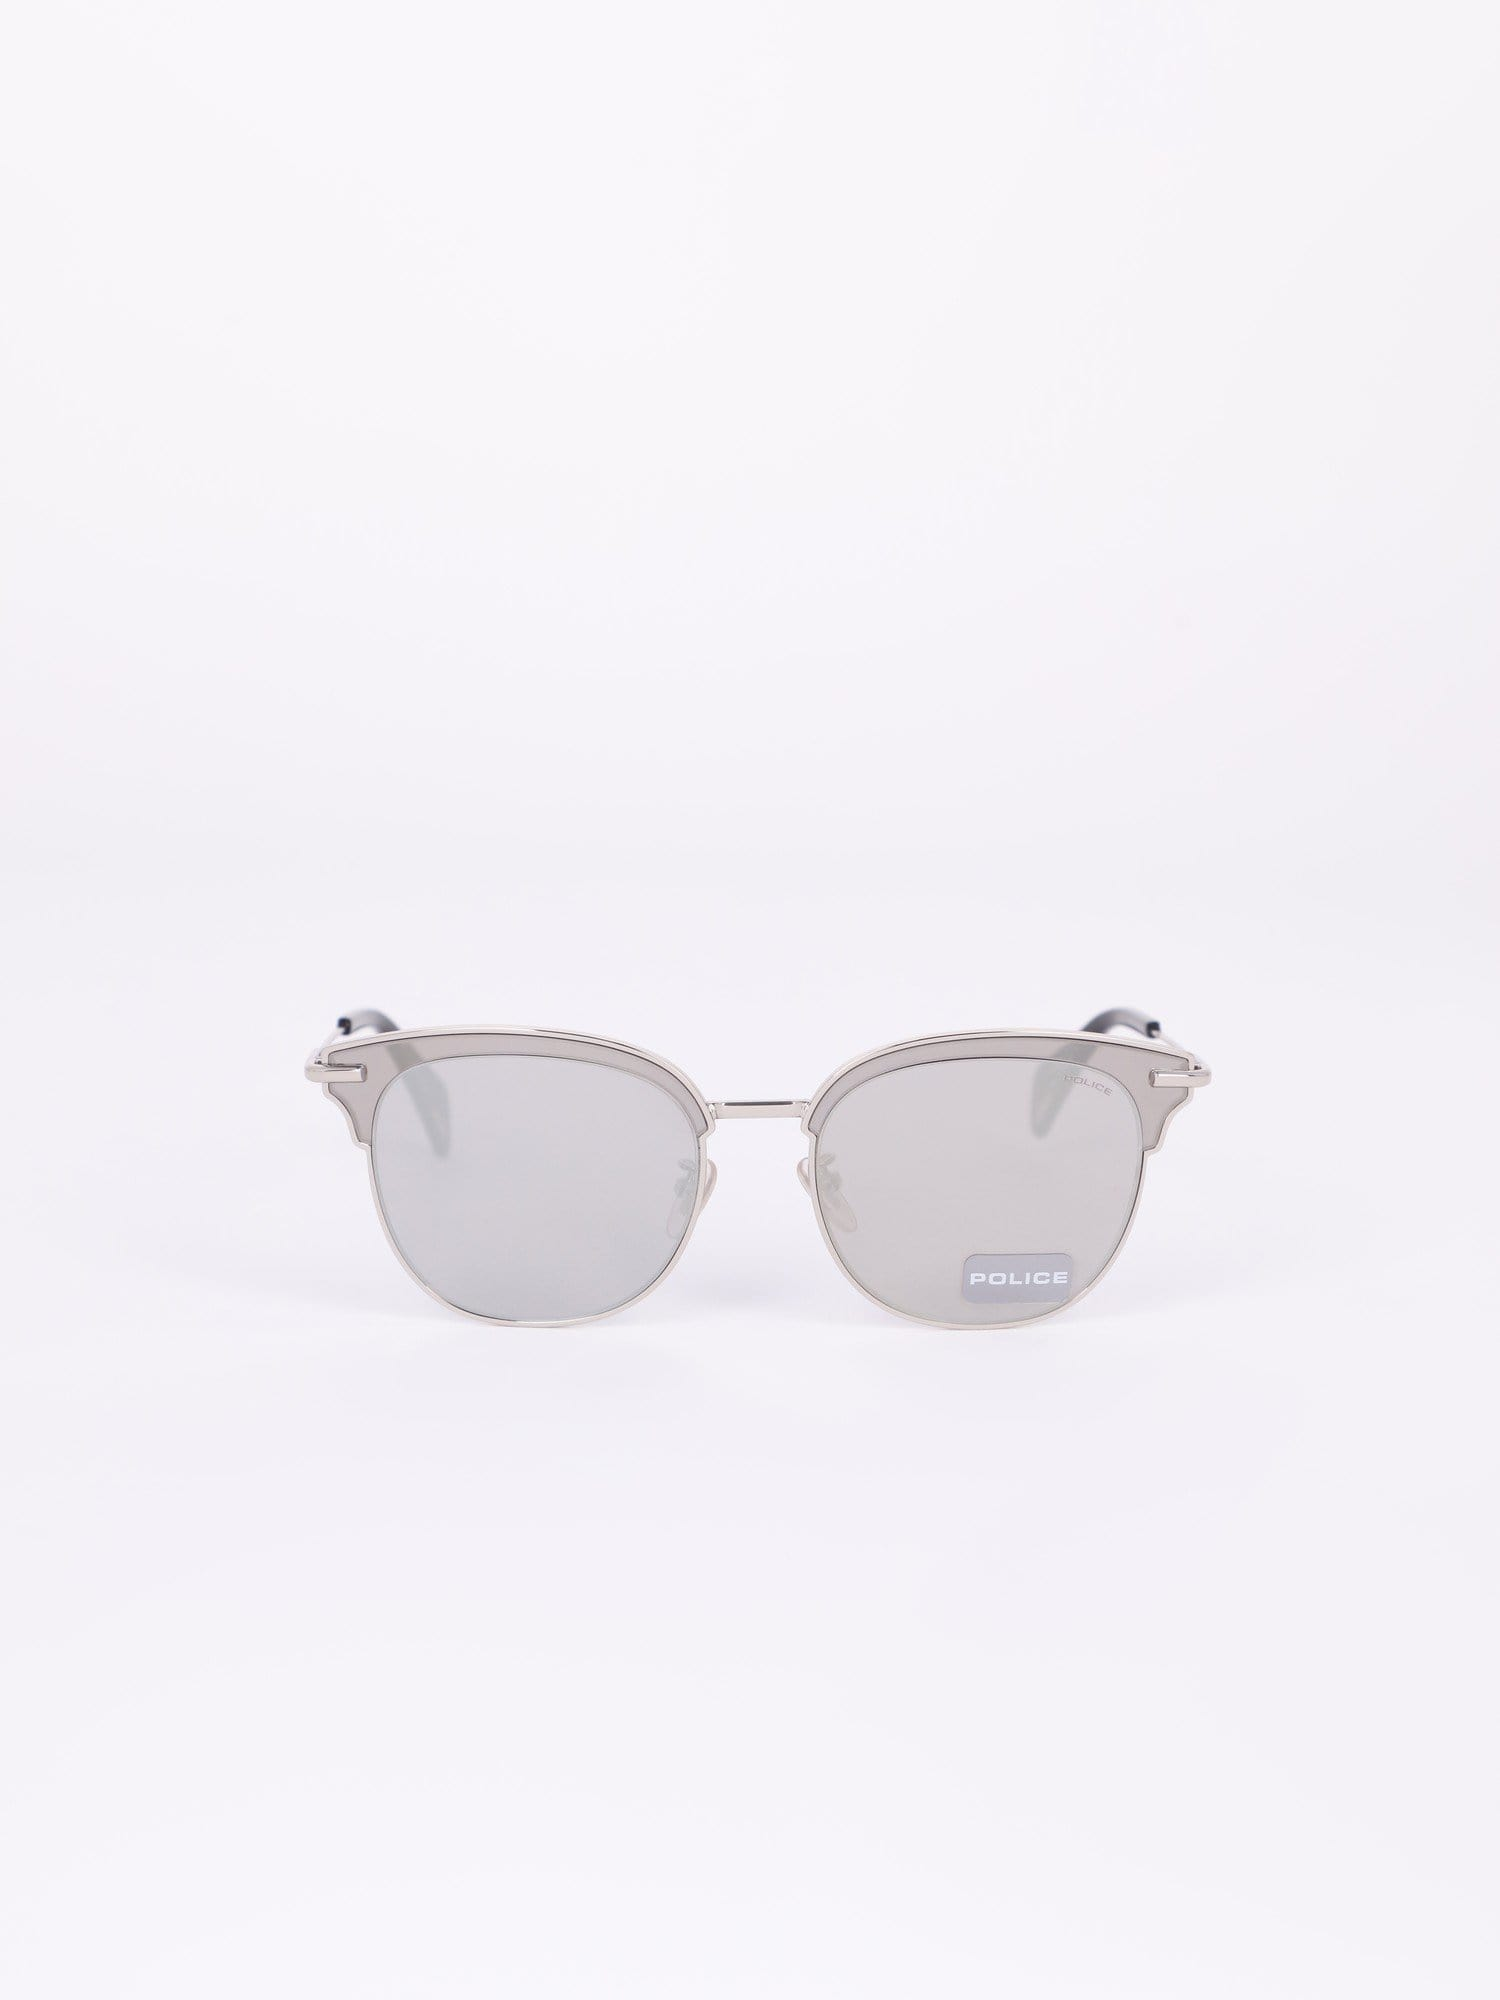 Police Sunglasses 00579X / 53 Cat Eye Square Lens Sunglasses